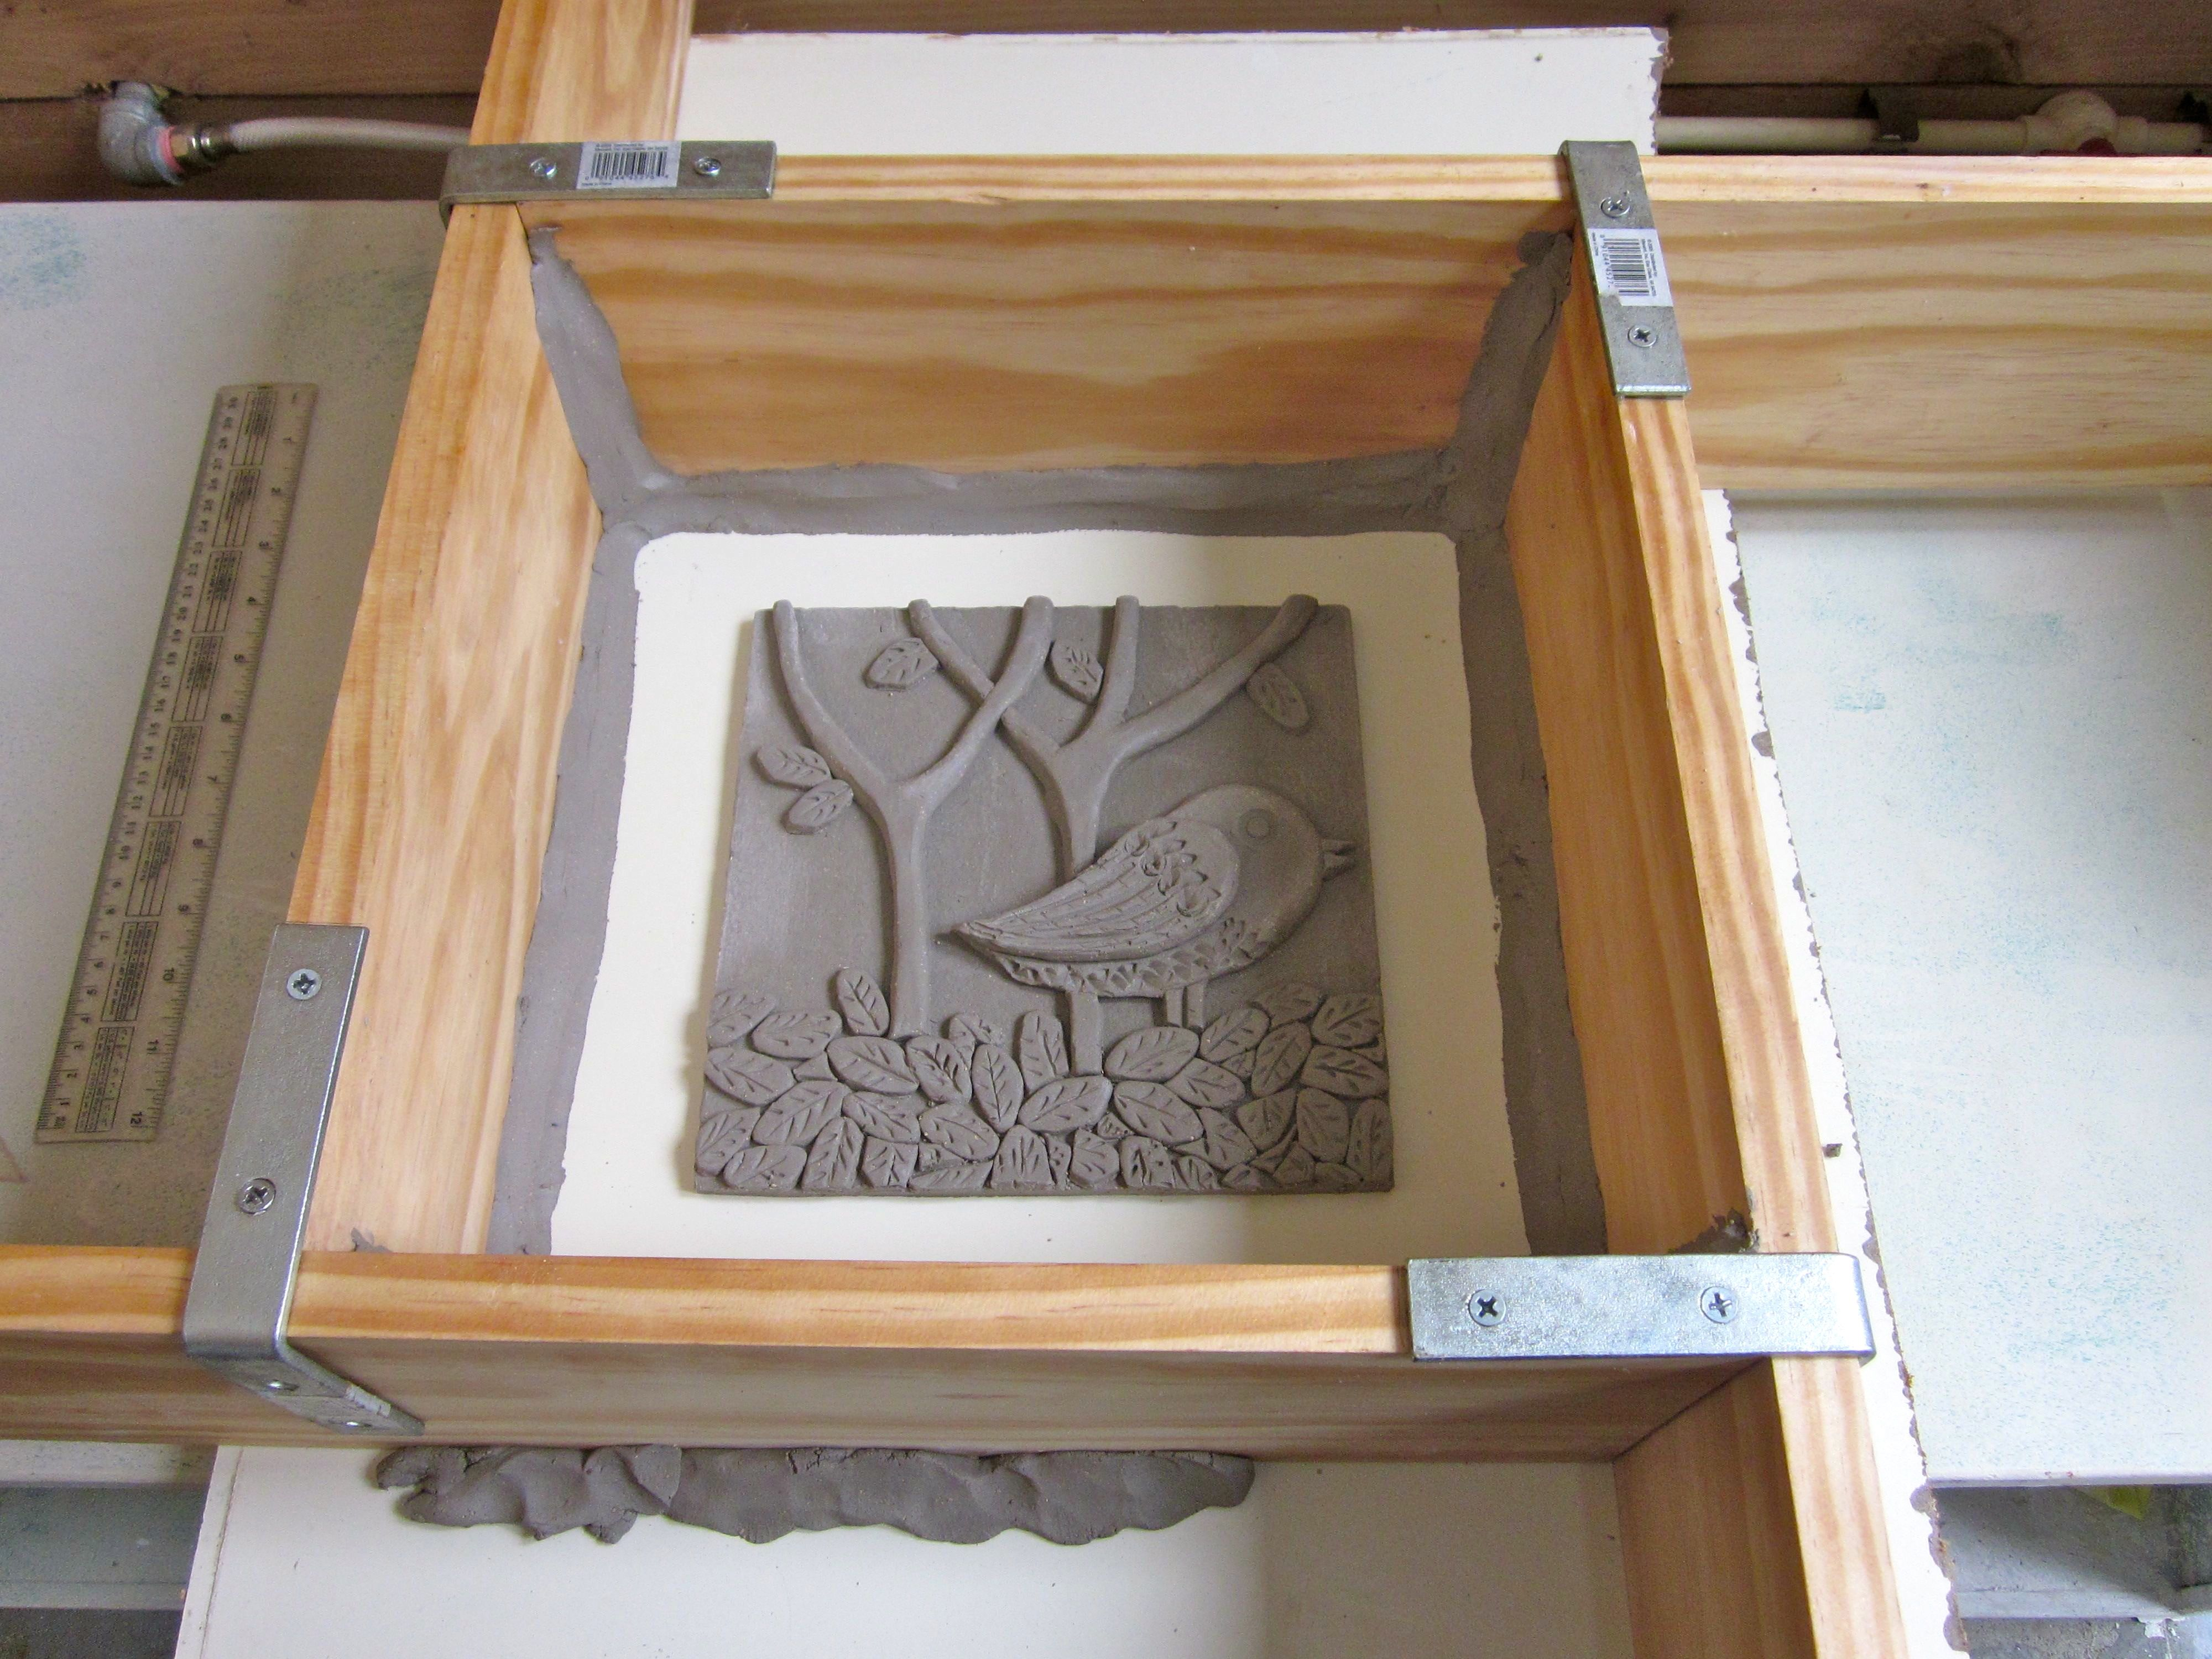 Mold making for tile work | The Art of Sandy Bruckner